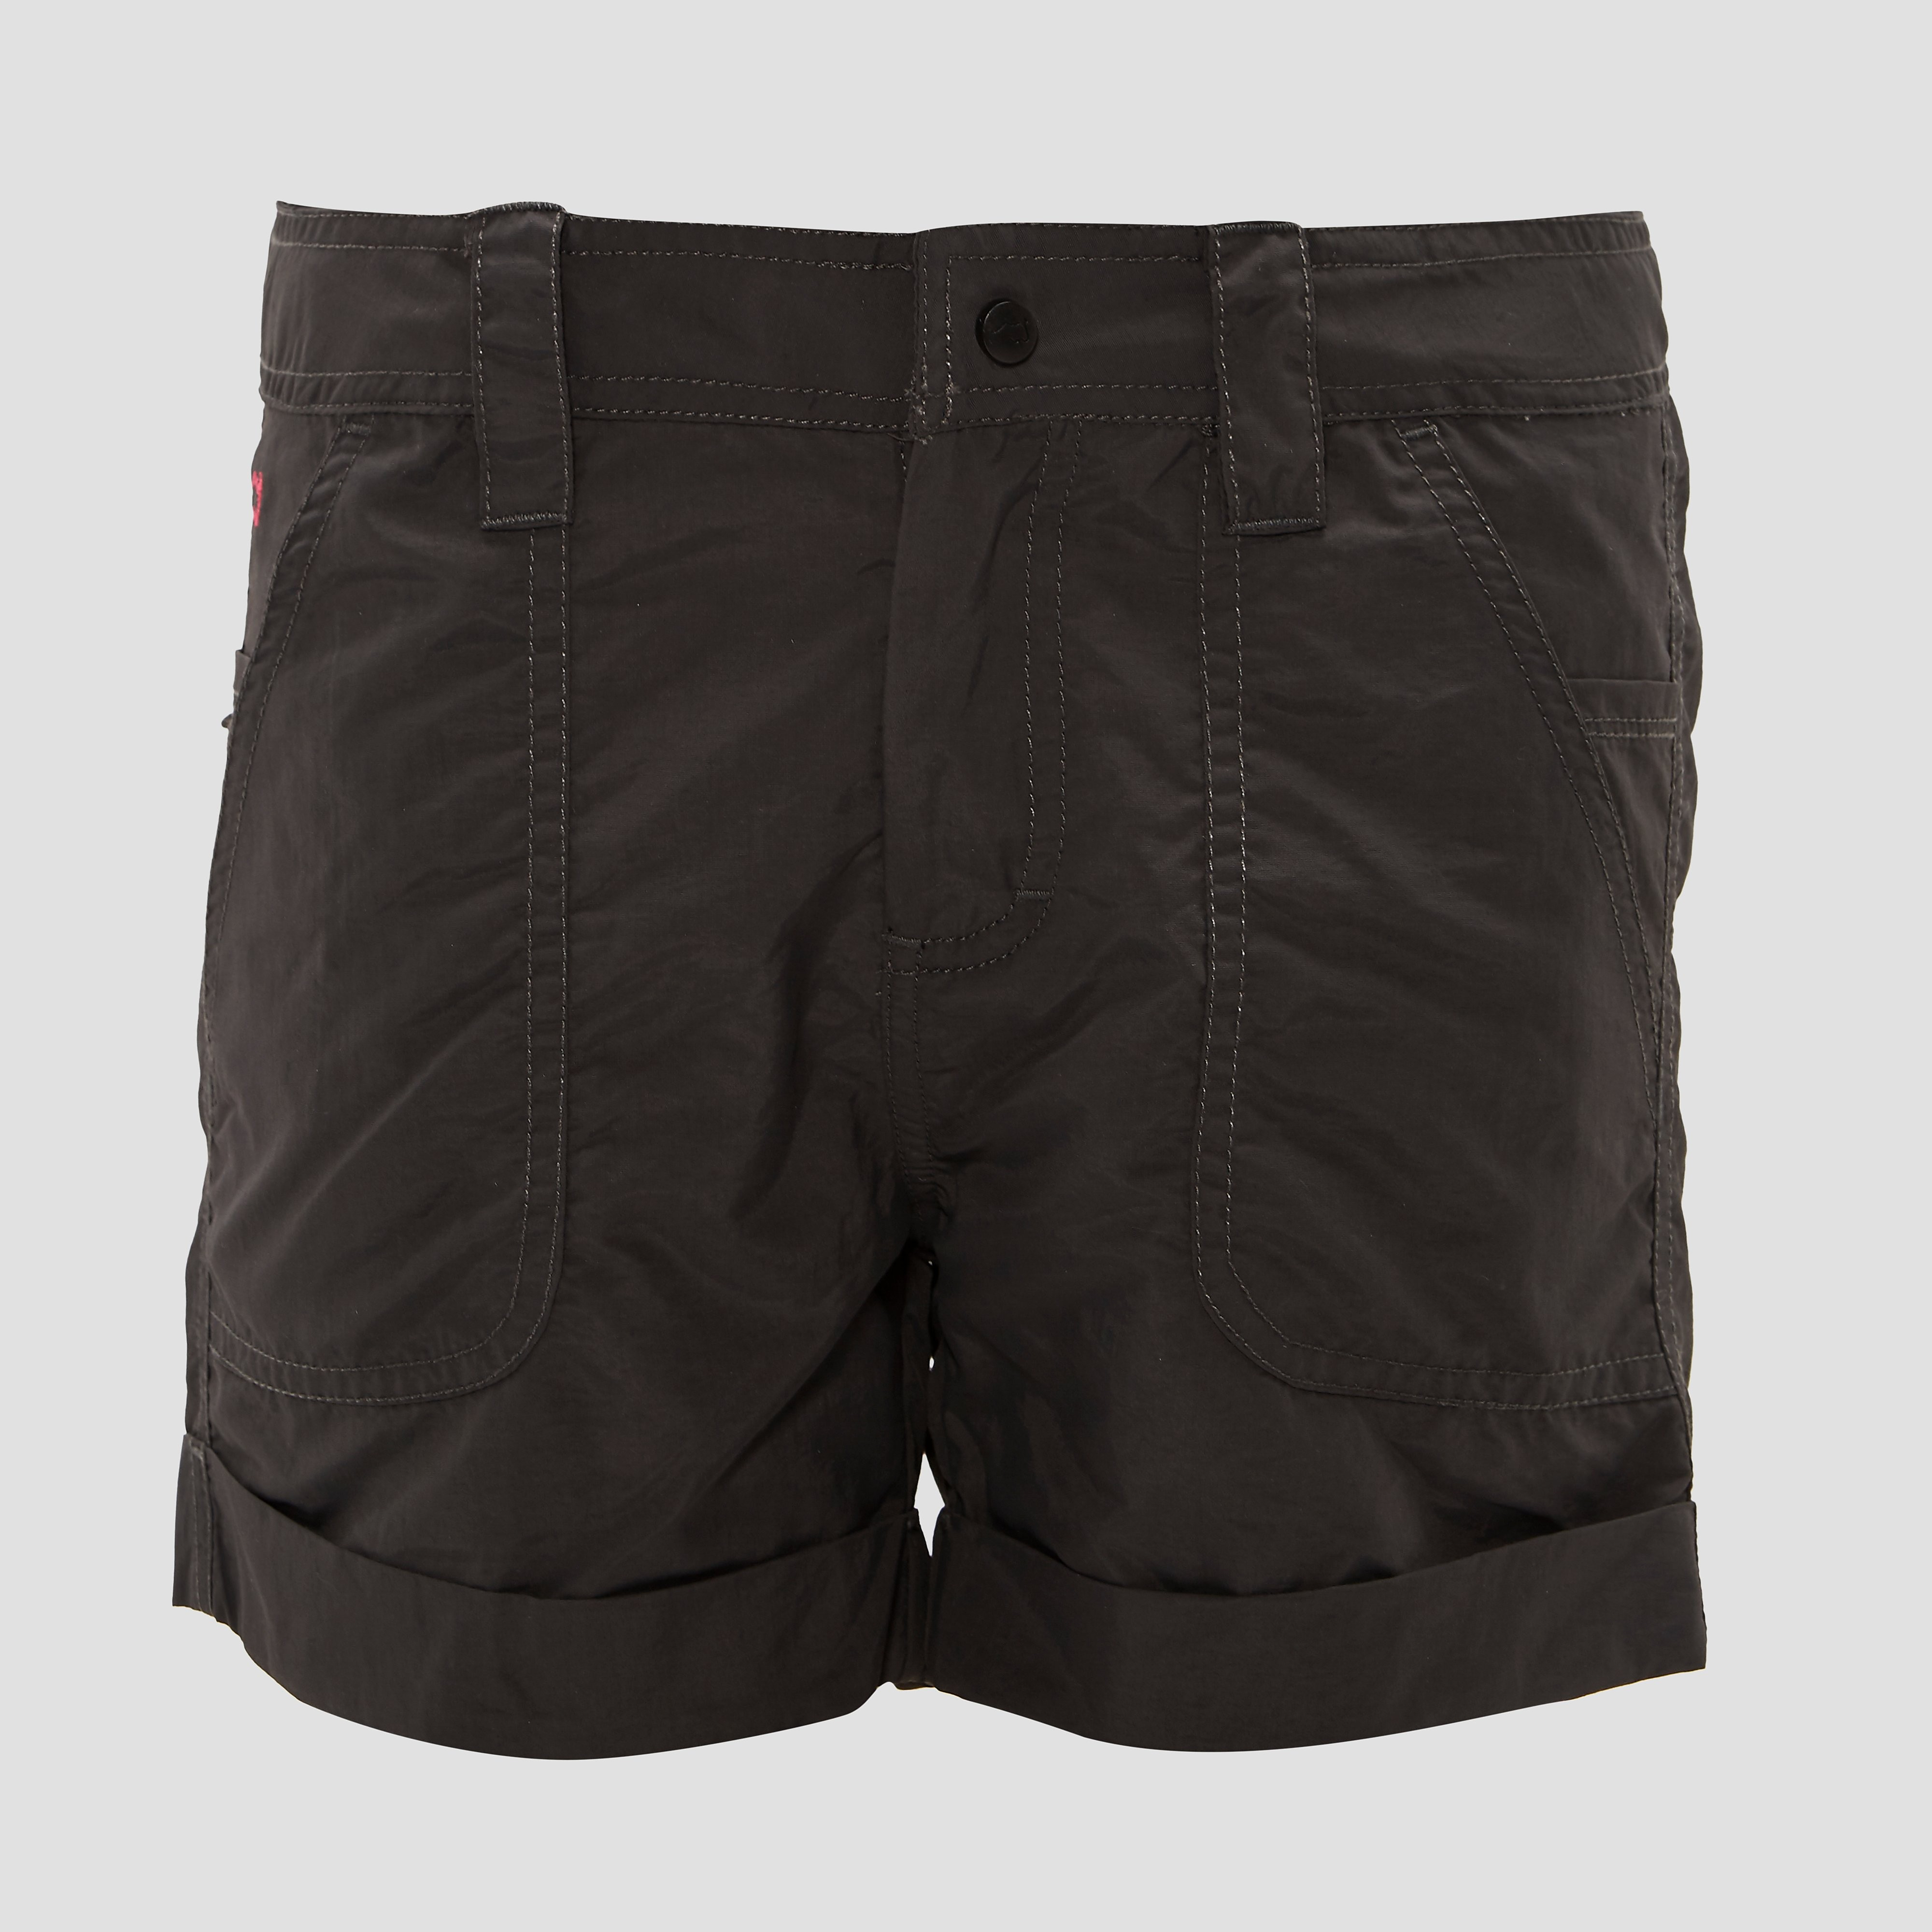 WILDEBEAST LINH SHORT